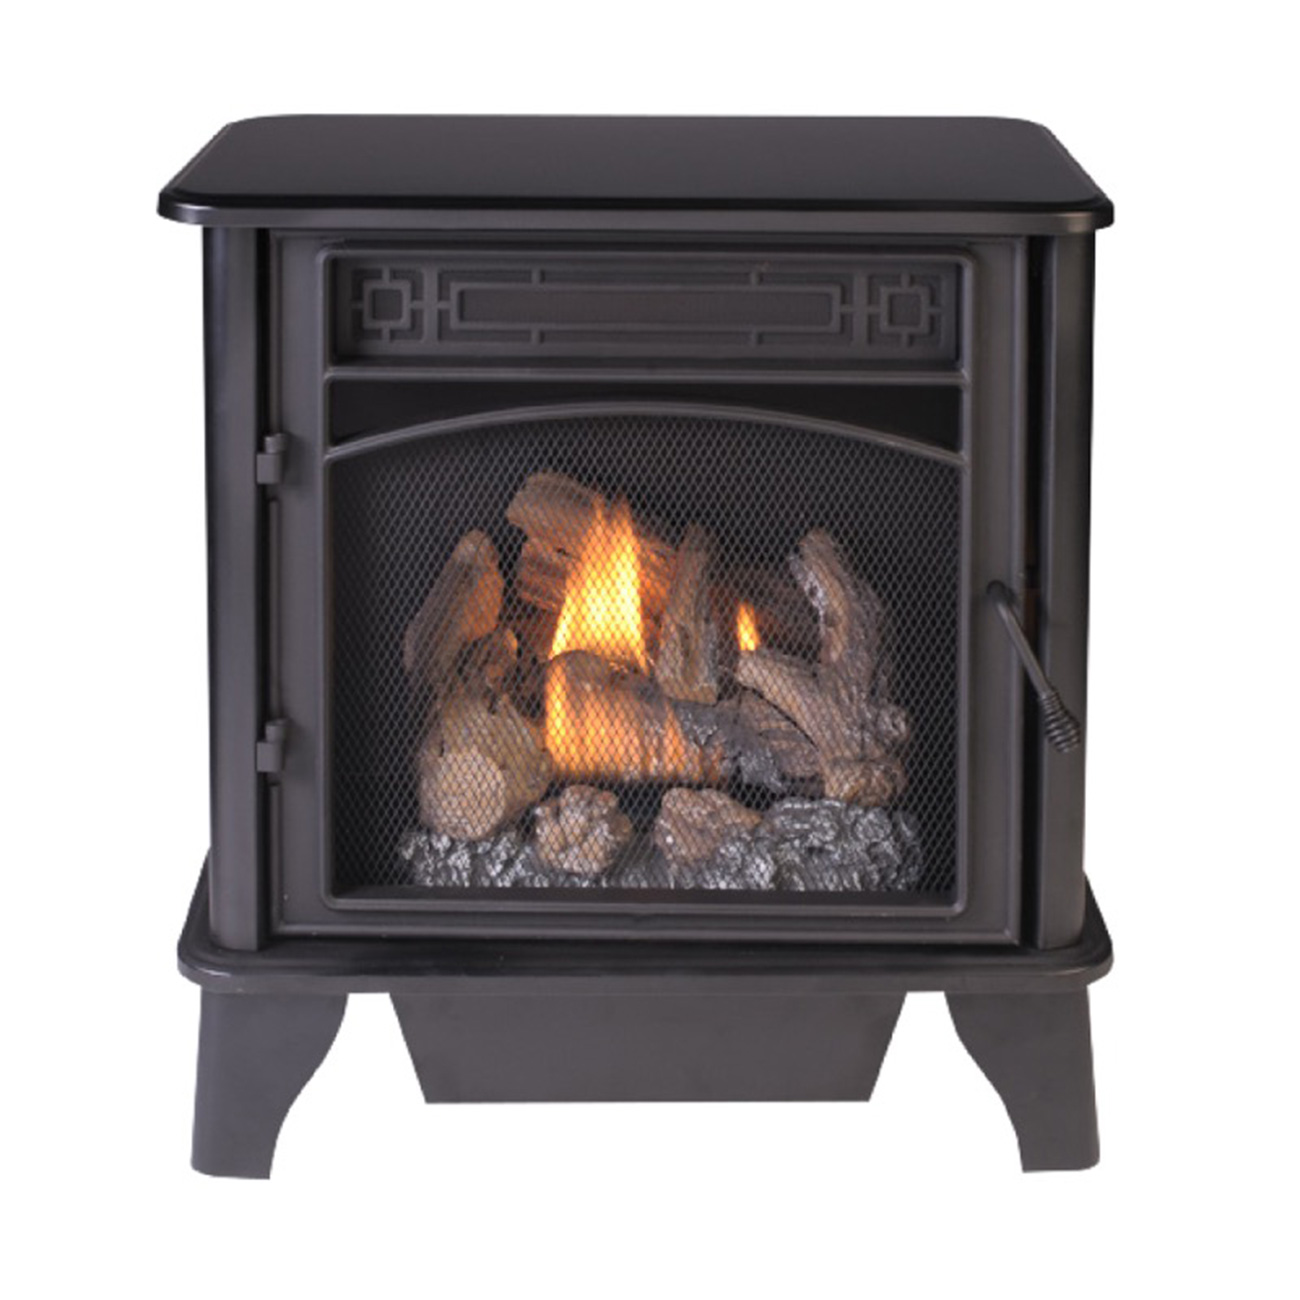 ProCom Stove ProCom Heating